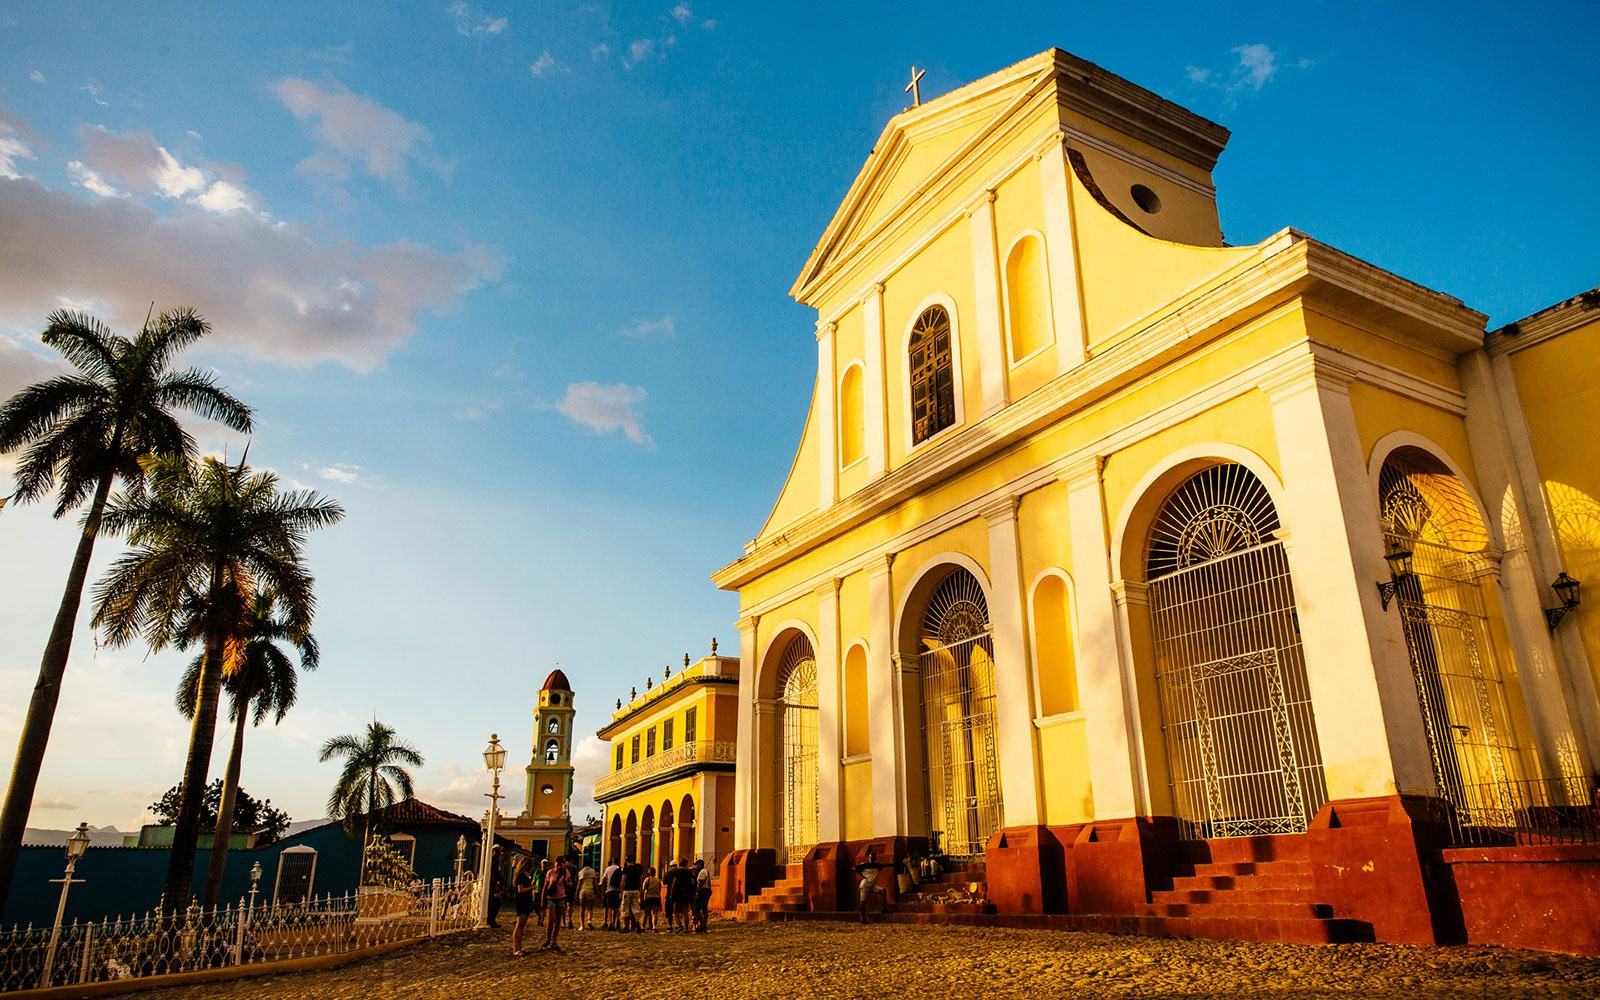 In Trinidad: Capture the Town's Classic Colonial Vibe